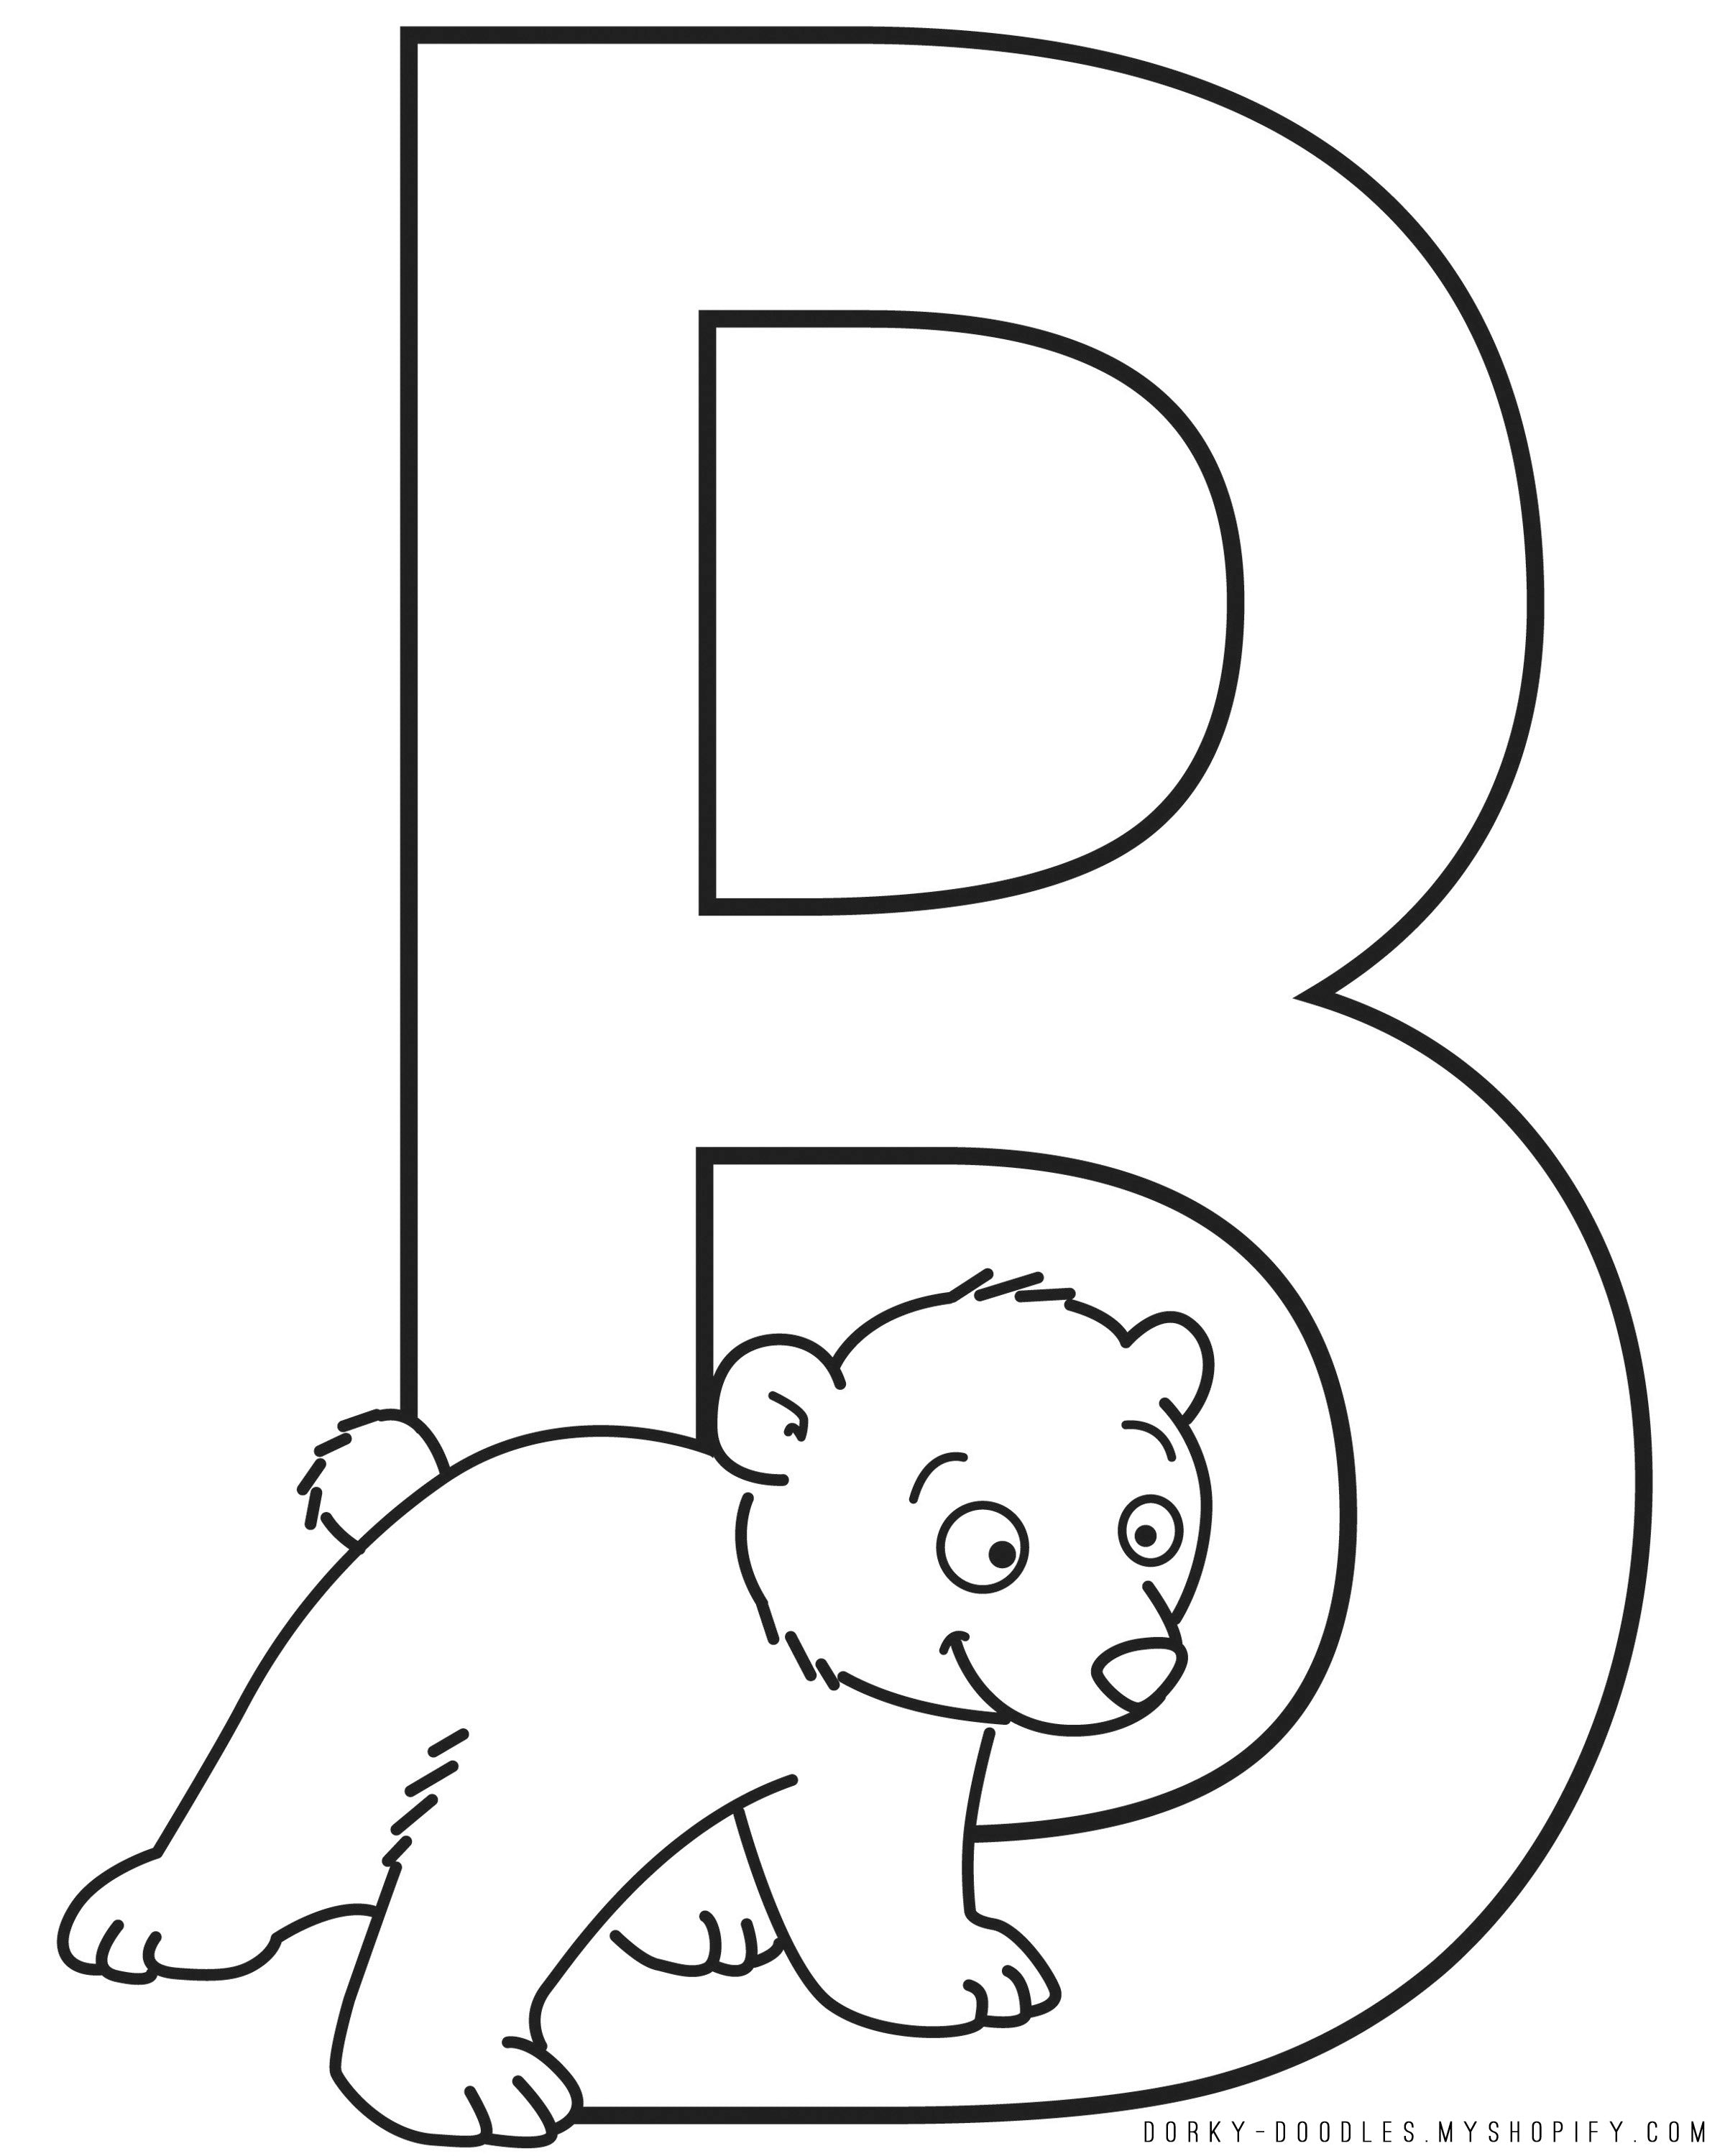 To Get The Letter B Coloring Page Right Click On Image Below